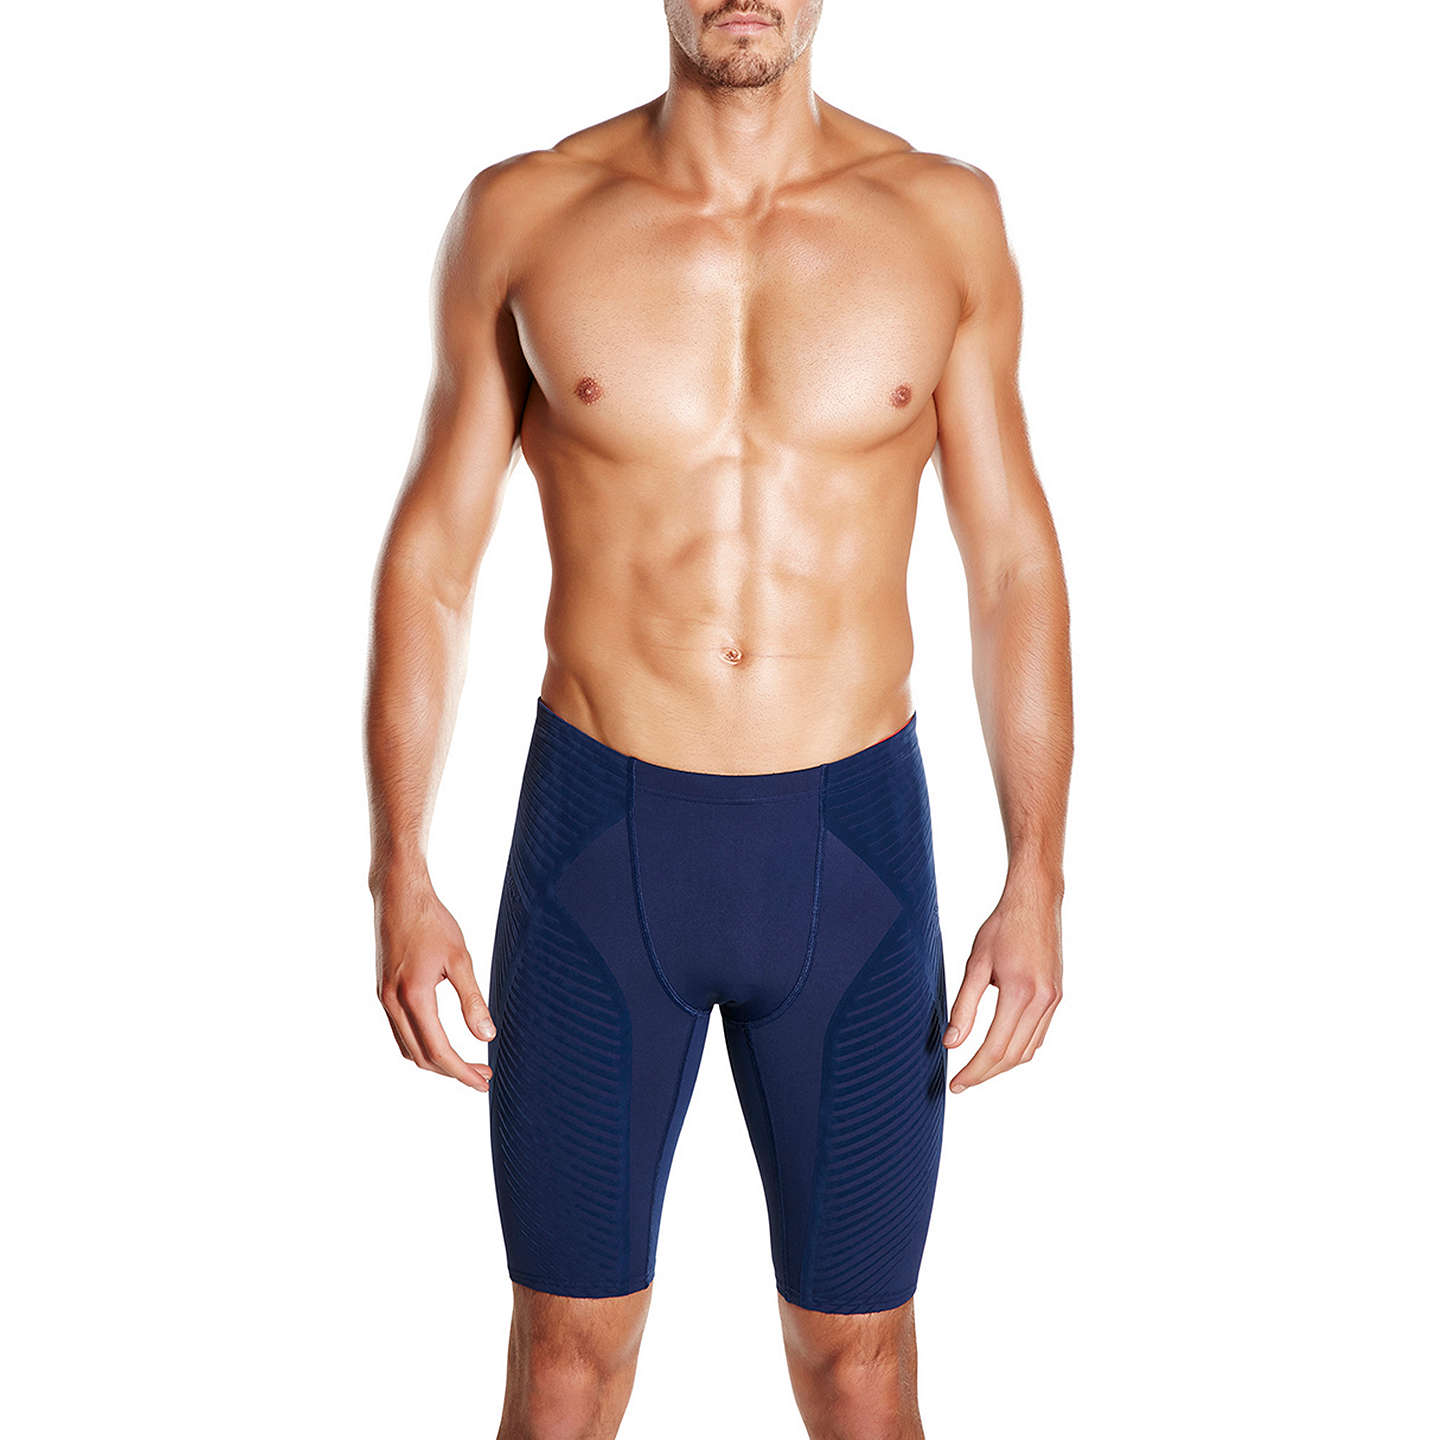 BuySpeedo Fit Power Form Jammers Swimming Shorts, Navy, 36 Online at  johnlewis.com ...